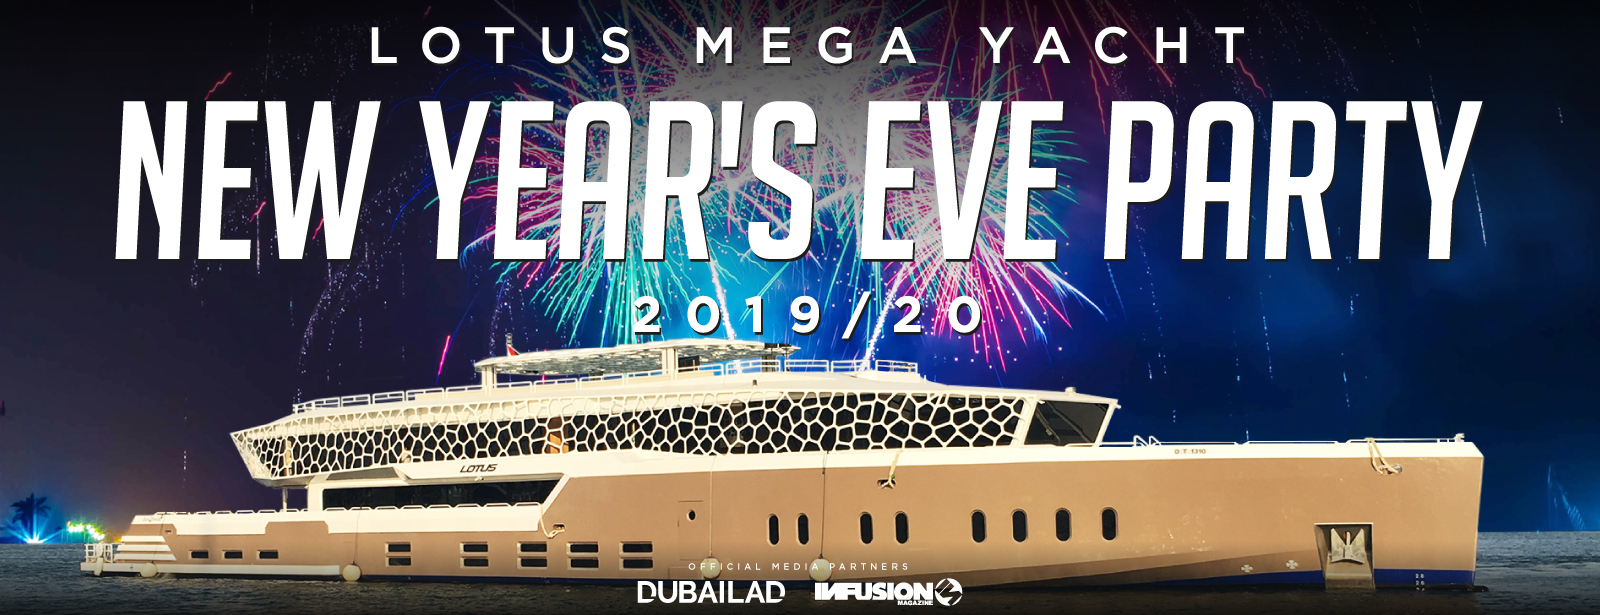 The Lotus Mega Yacht New Year's Eve 2020